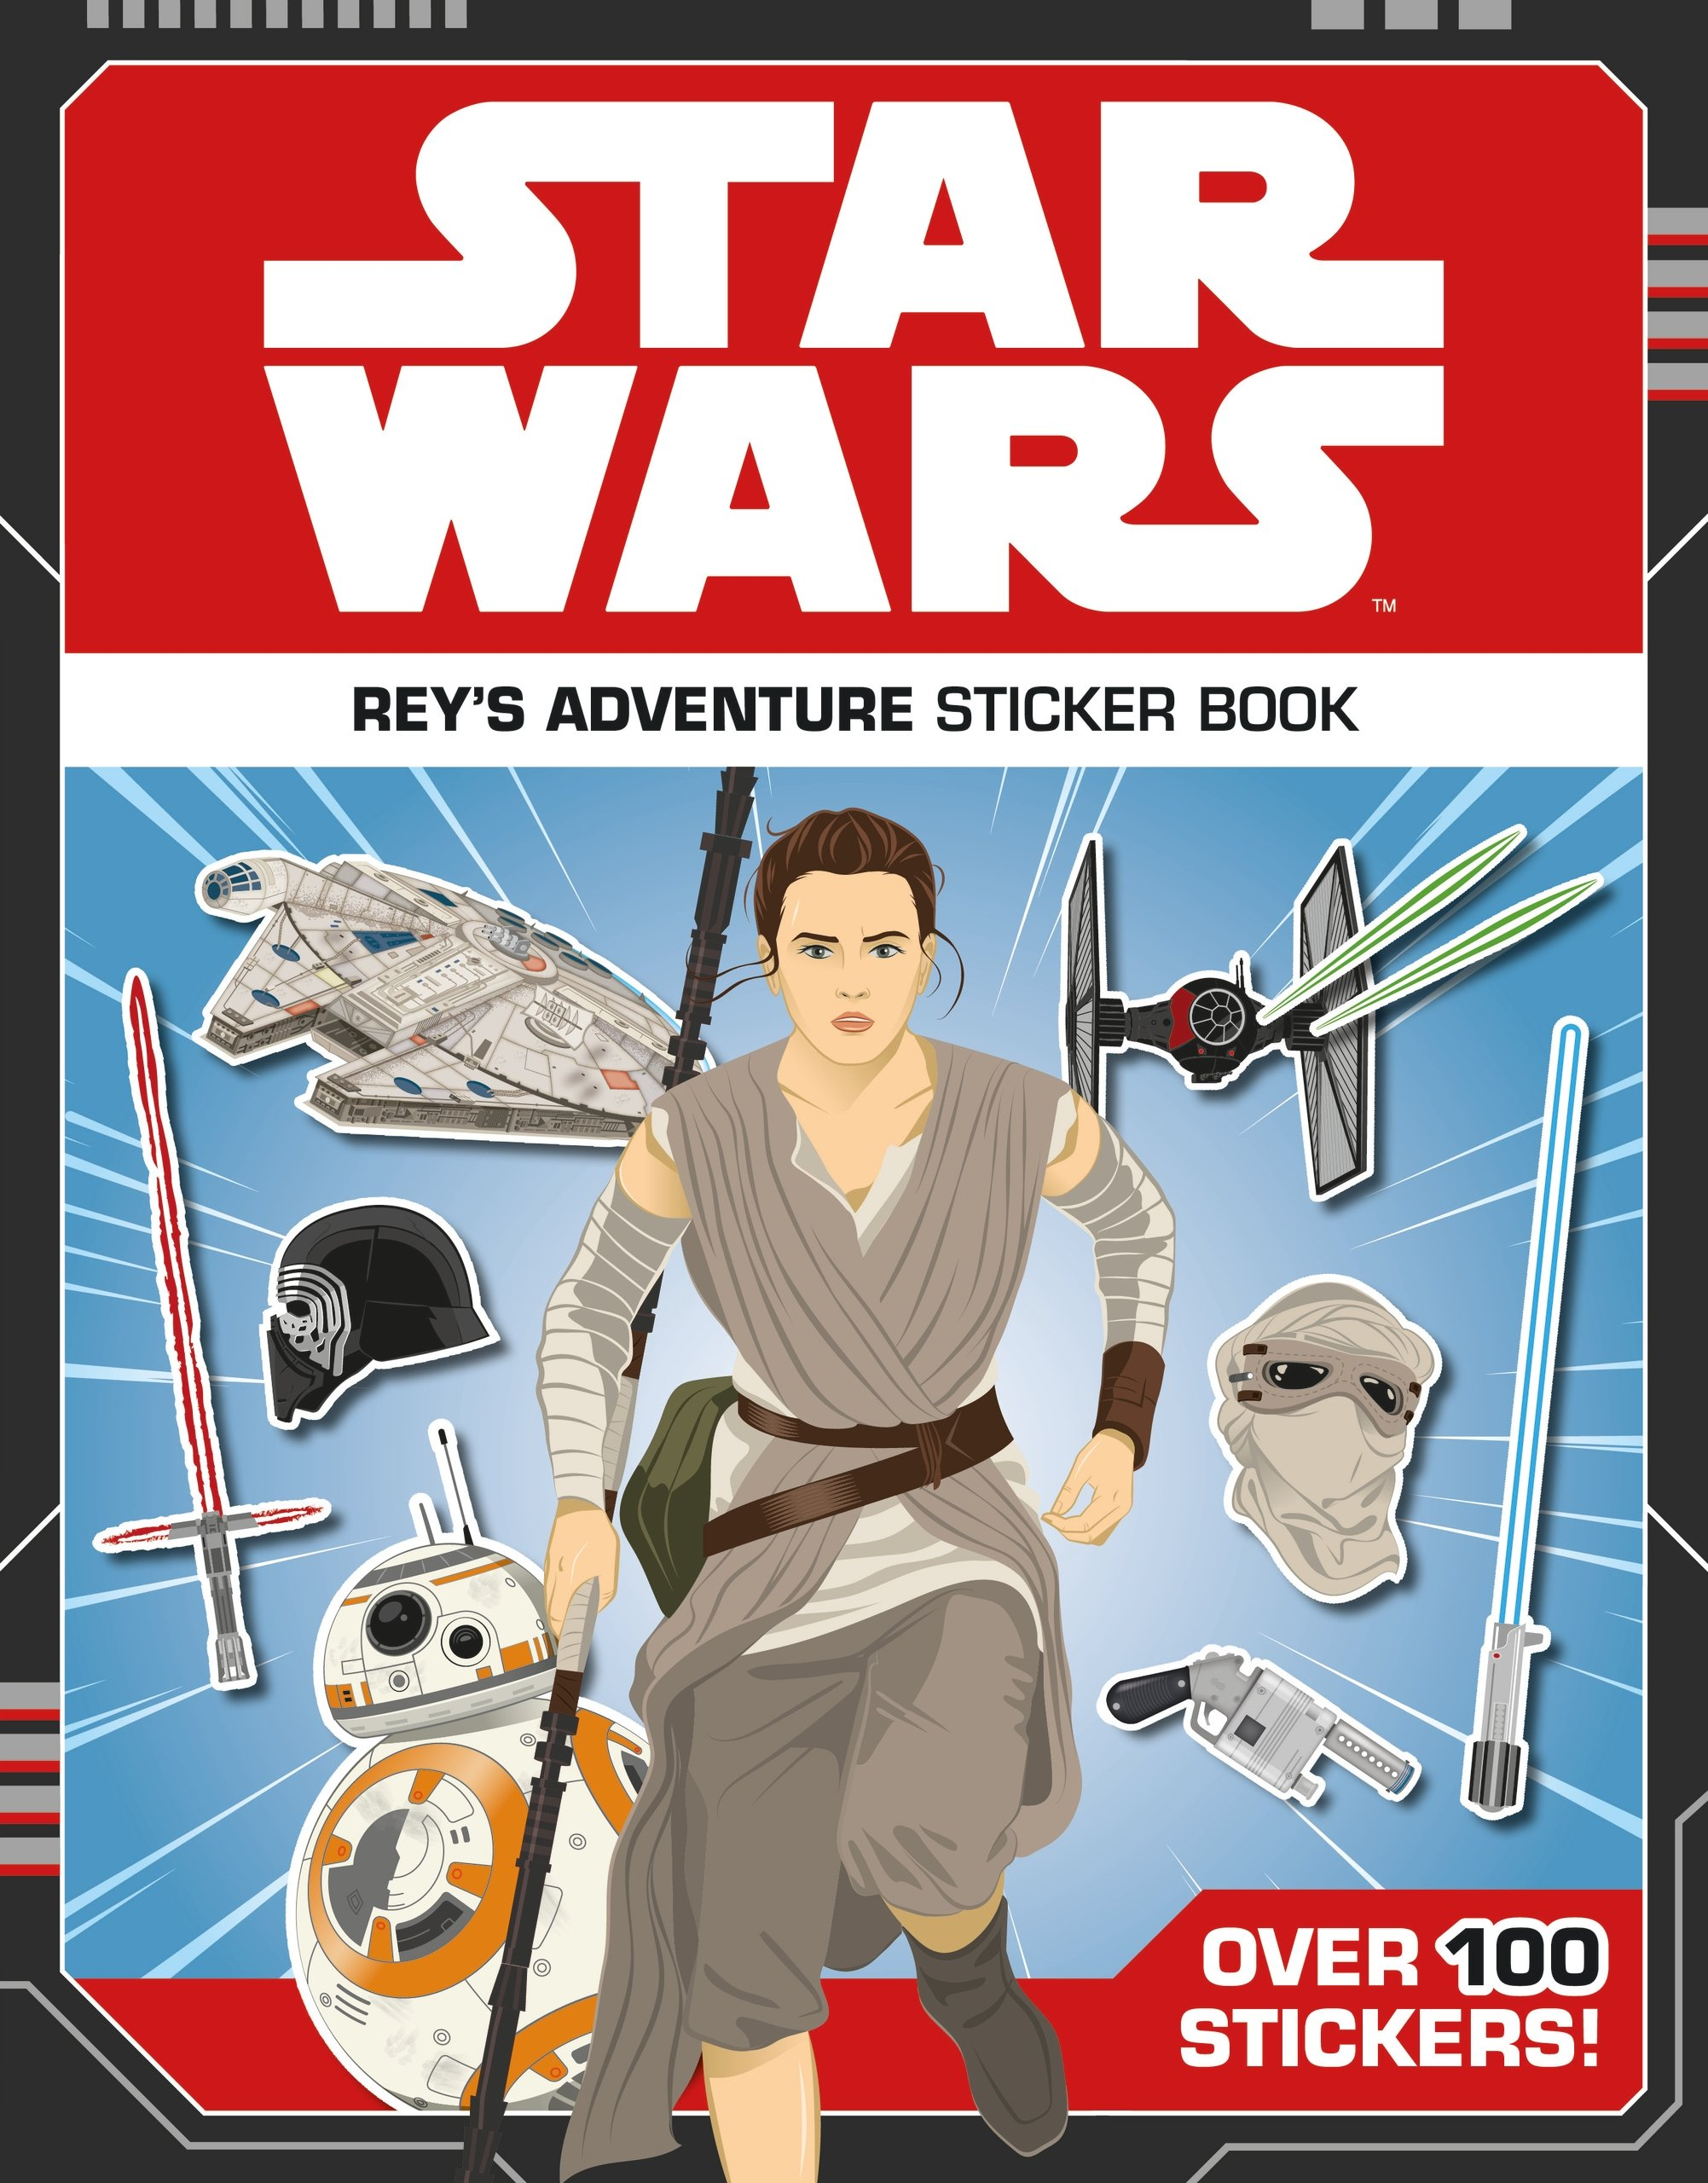 Star Wars: Rey's Adventure Sticker Book